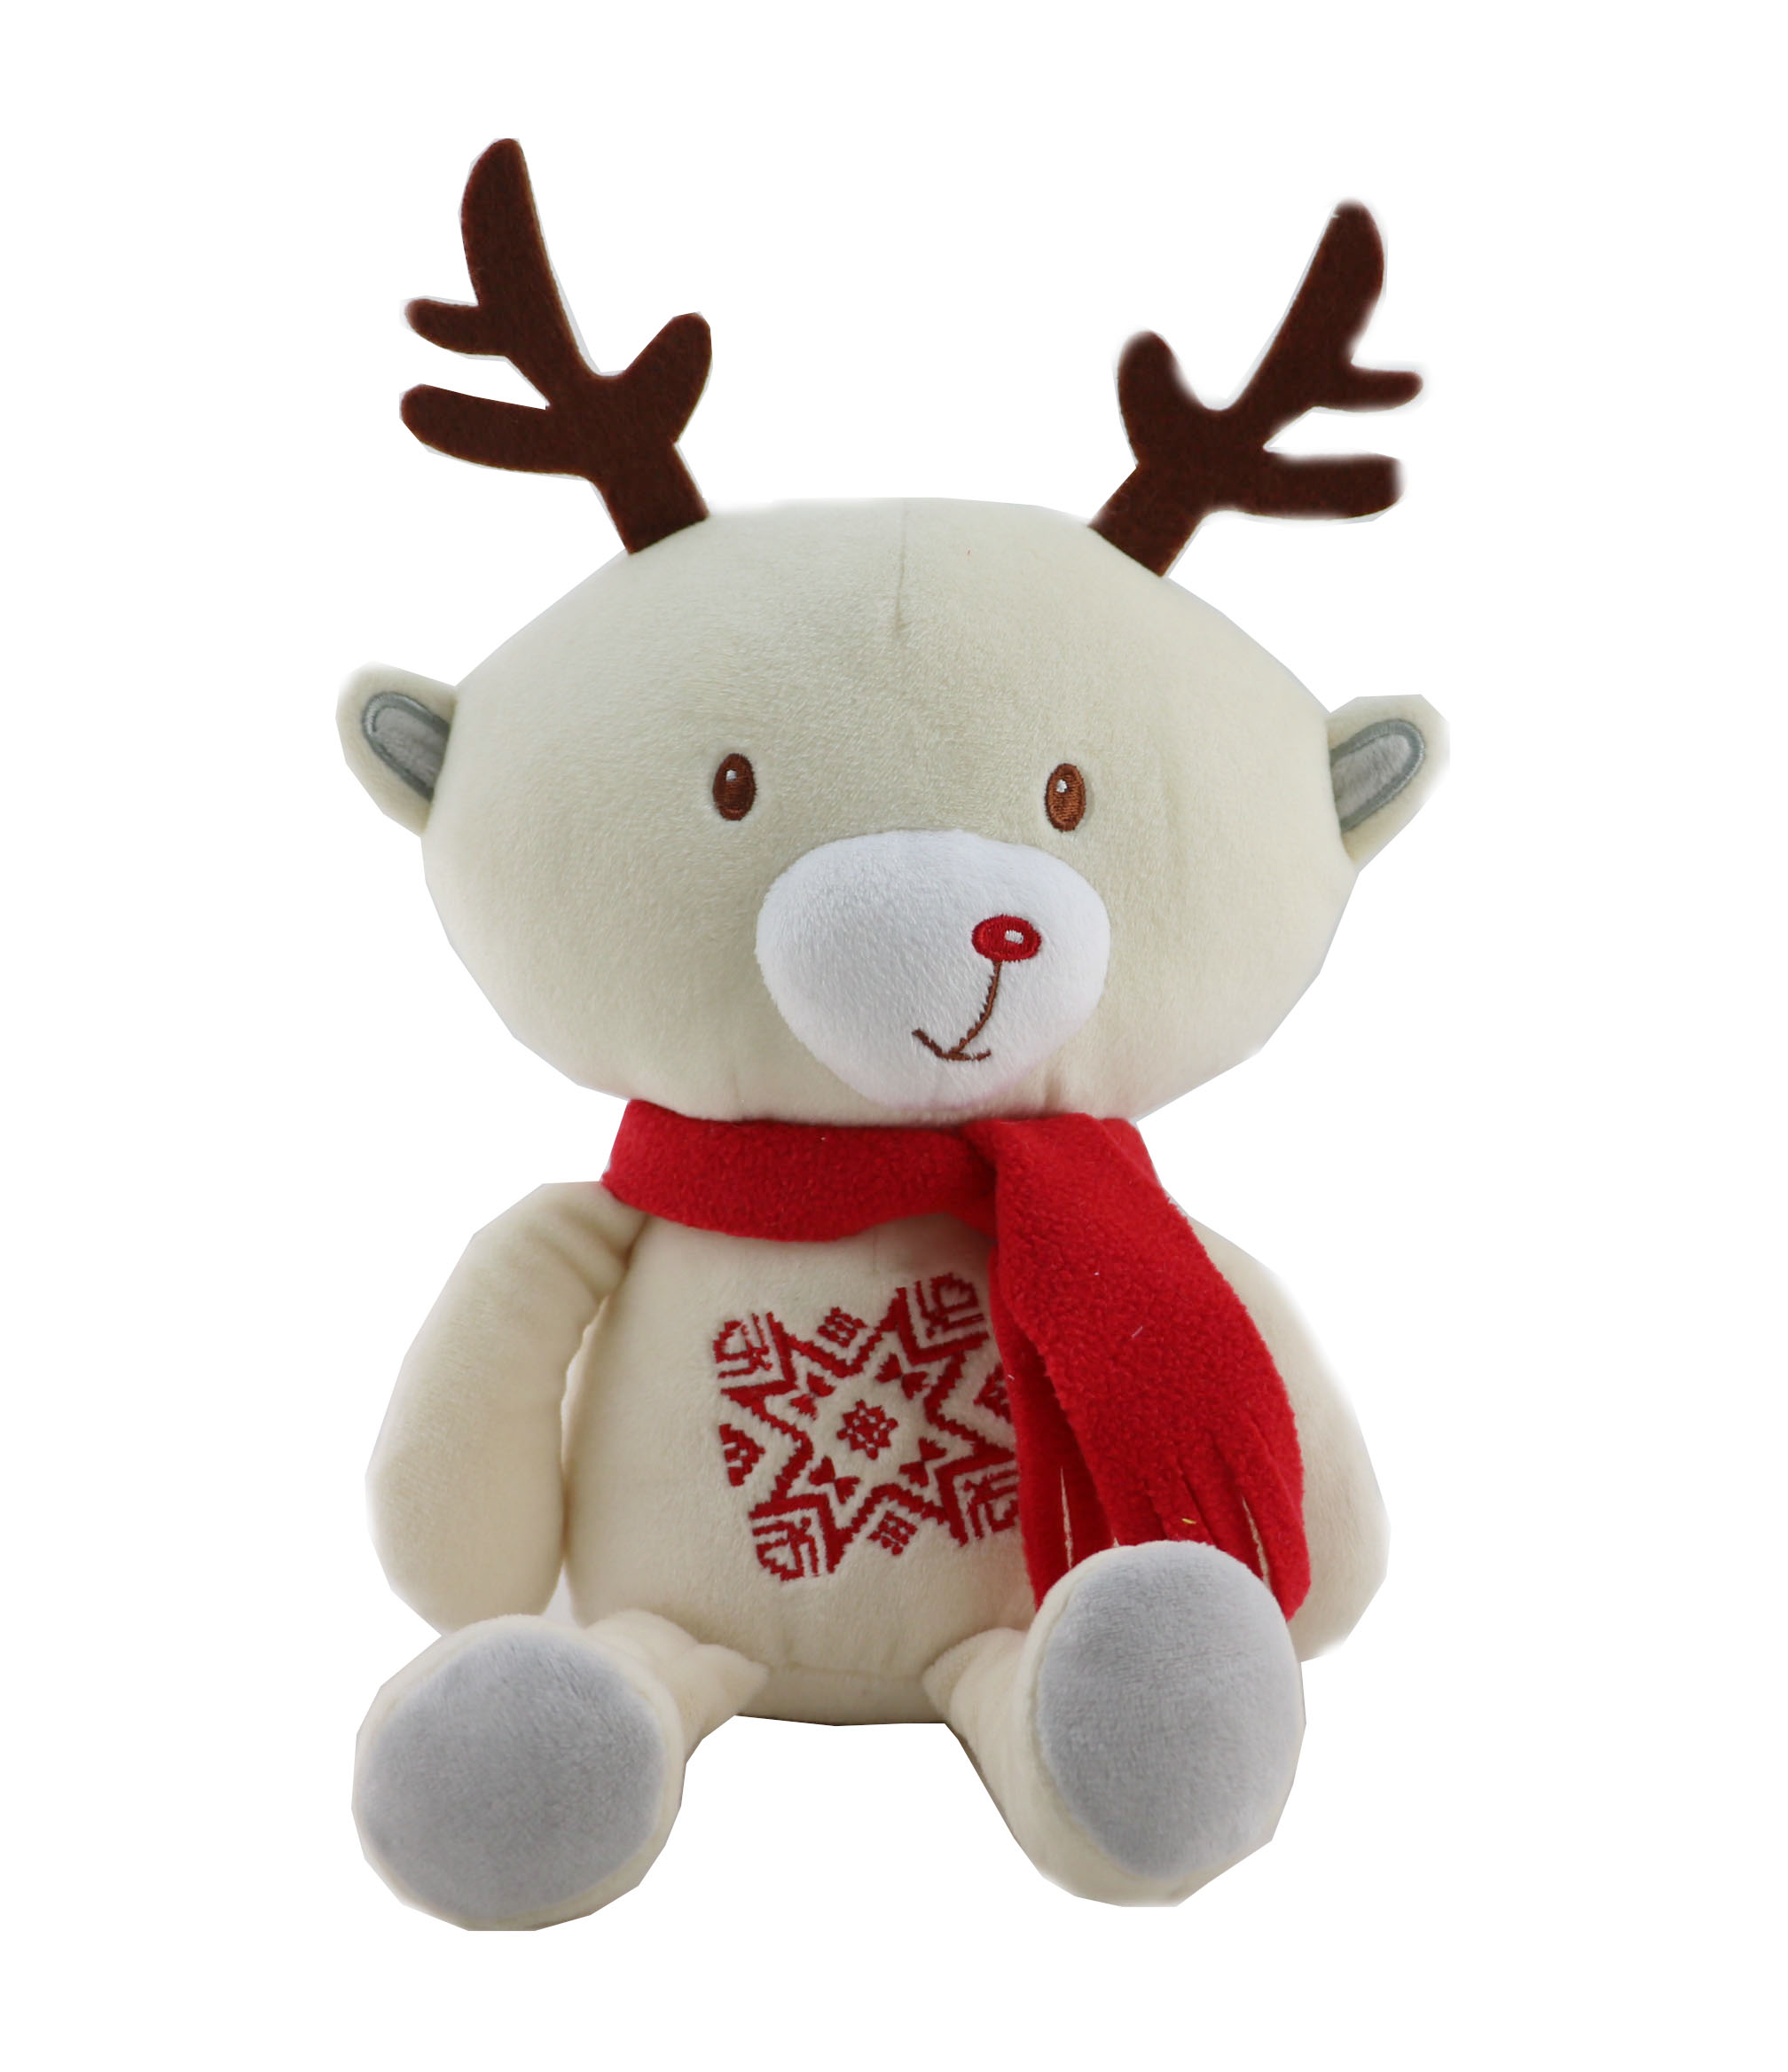 2017 New Design Christmas Moose Plush Toy for Kids